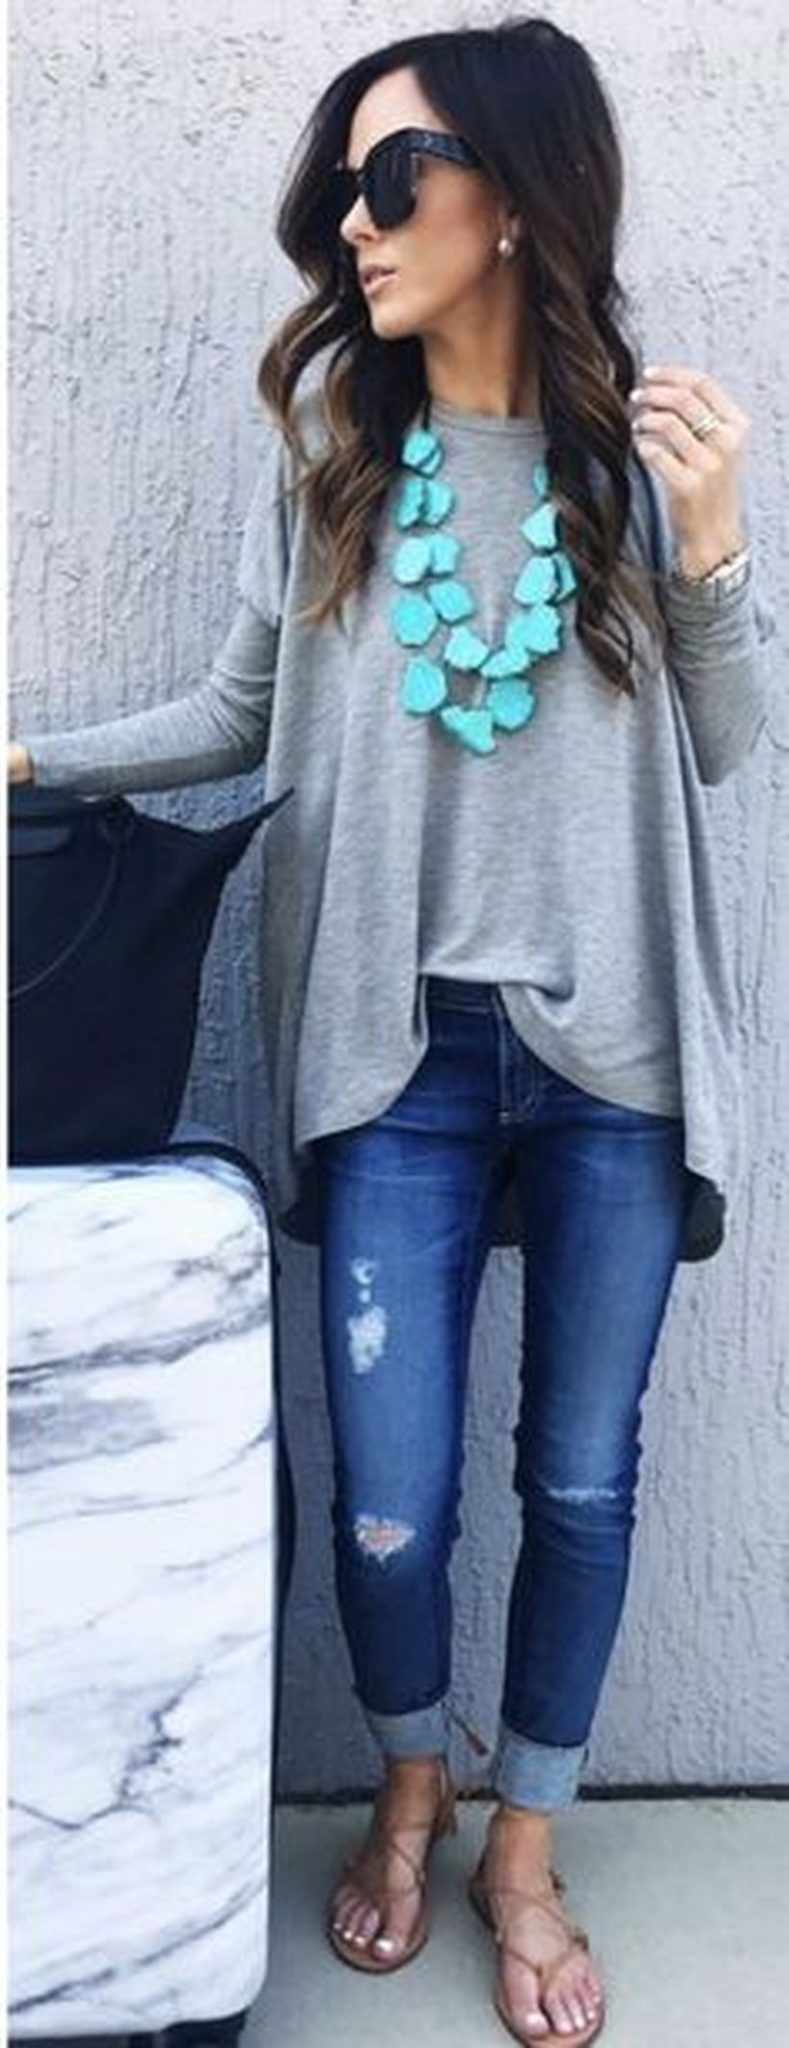 Best casual fall night outfits ideas for going out 10 ...